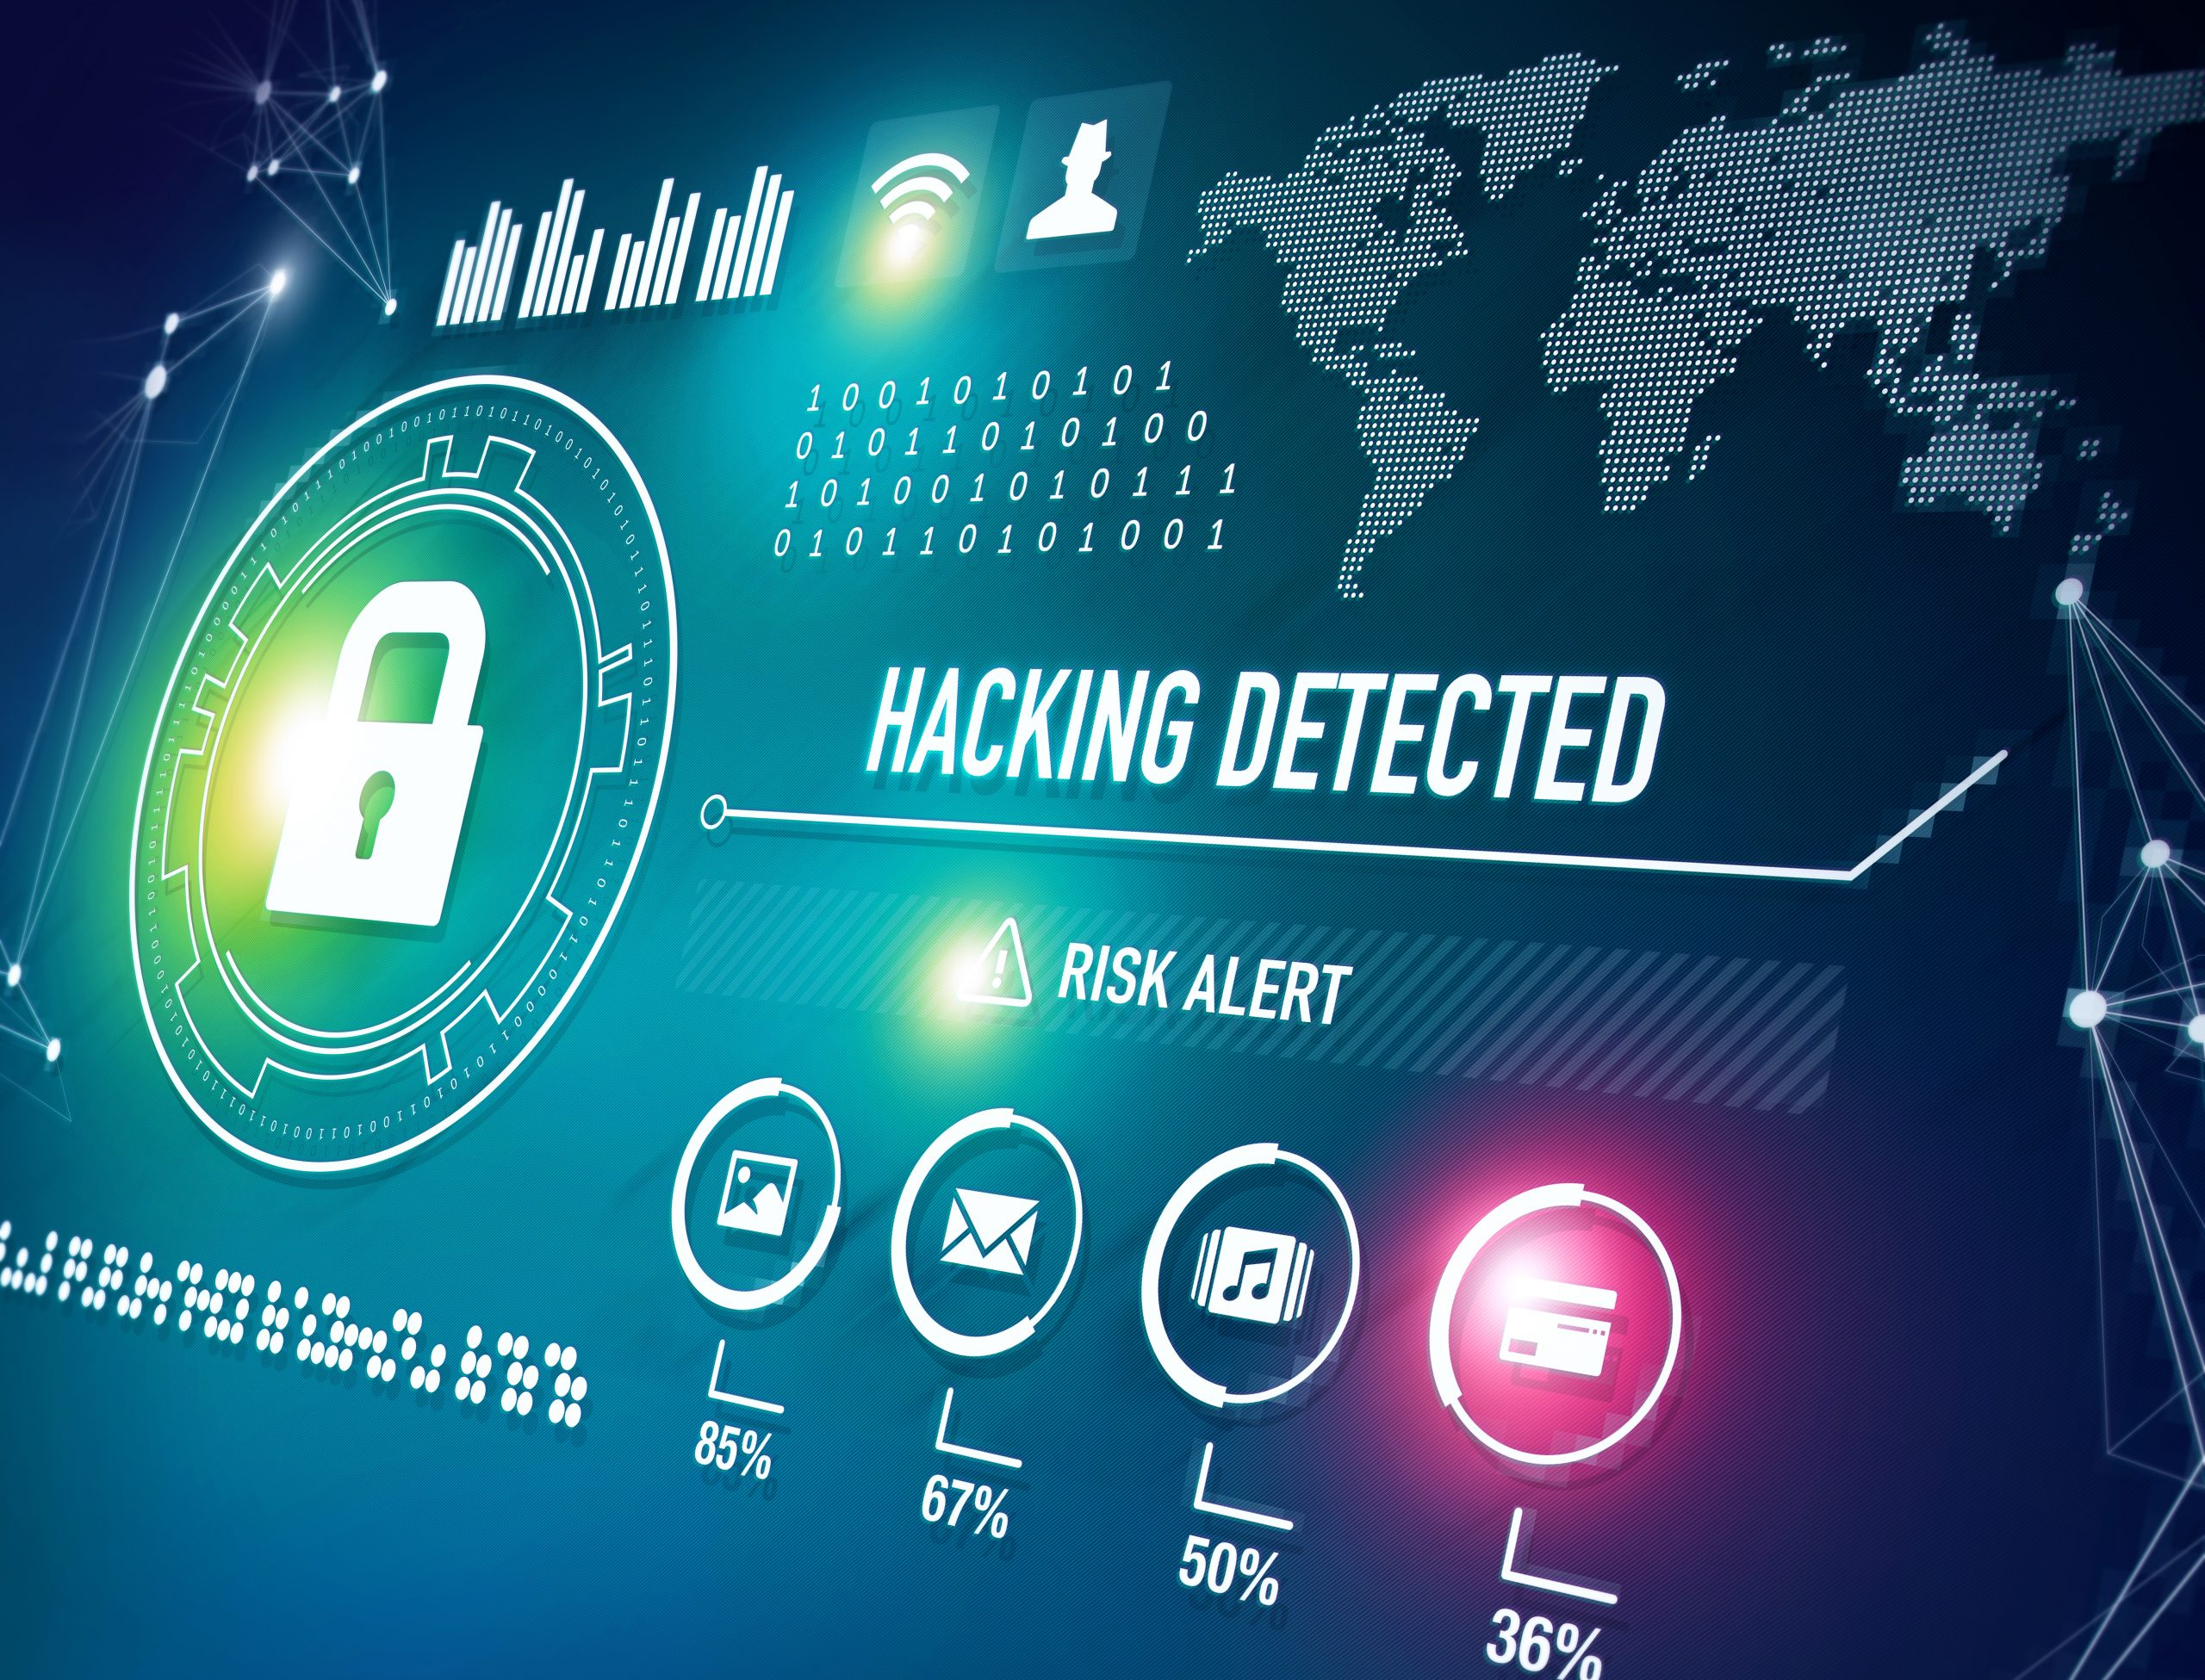 Catalyst IT Solutions | Is My Business Too Small to Be Hacked?